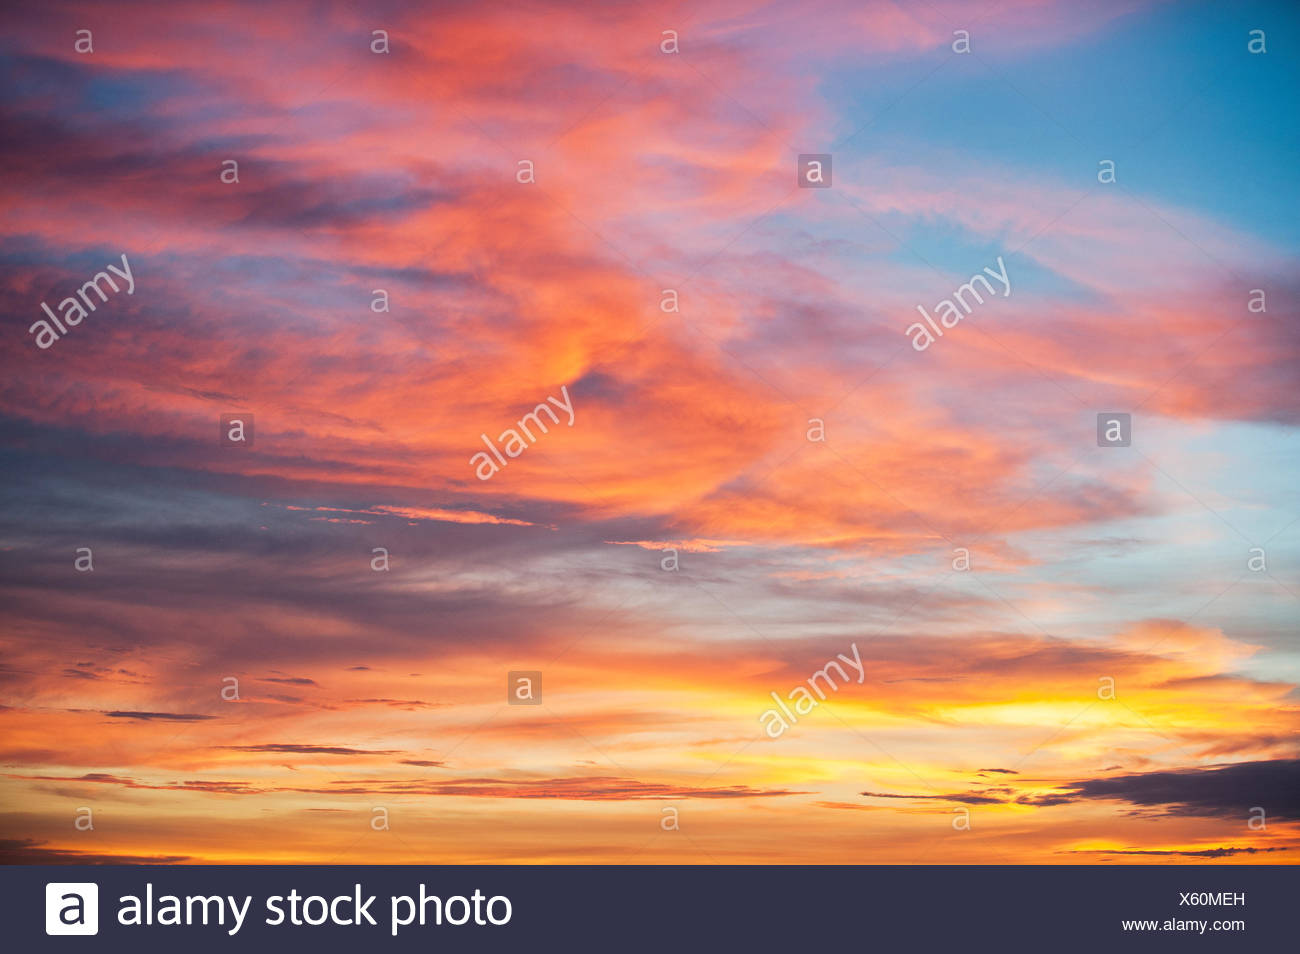 Sunset looking West to Irian Jaya, West Papua, Indonesia. - Stock Image